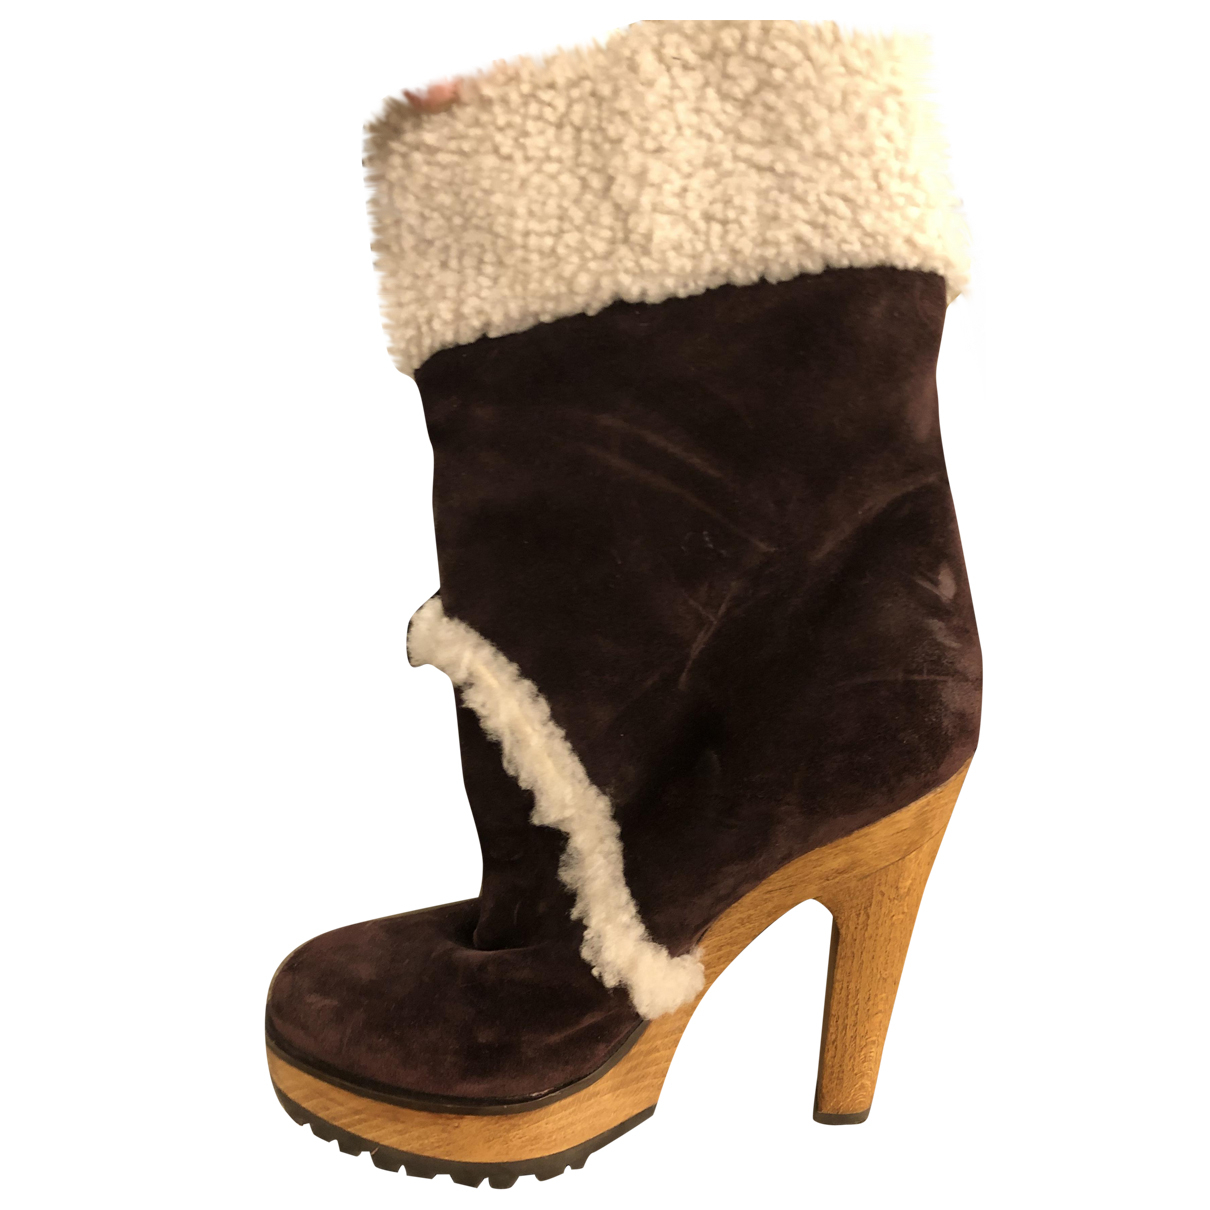 Dolce & Gabbana N Burgundy Suede Ankle boots for Women 36 IT